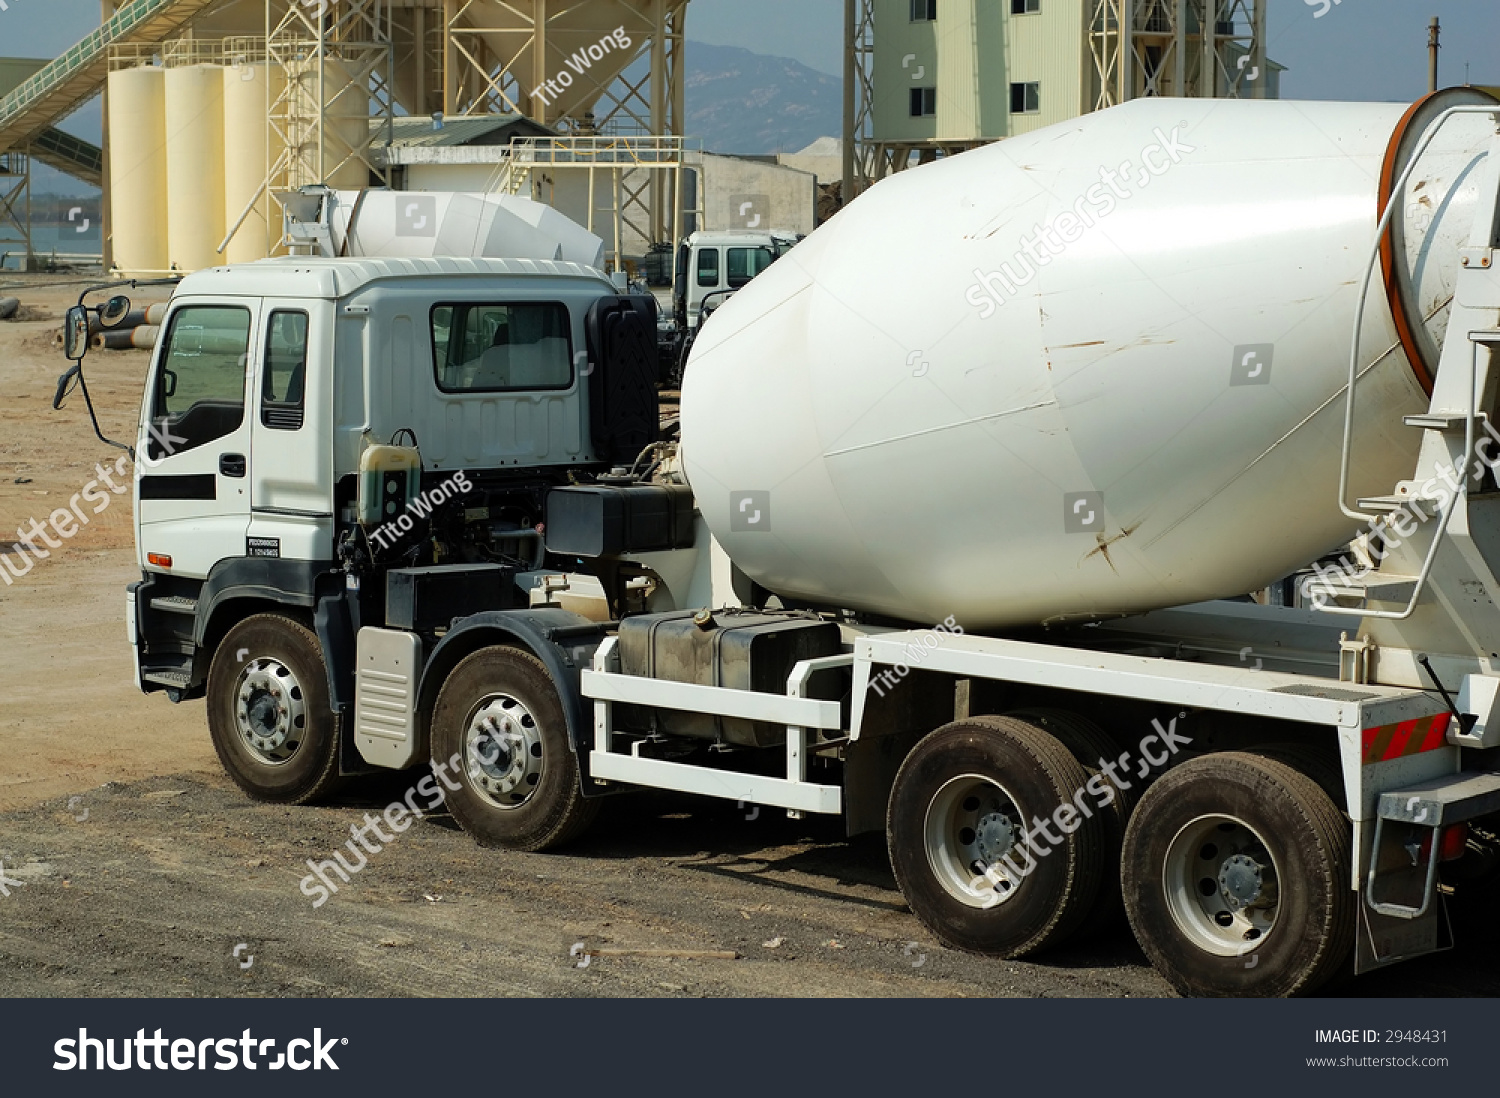 cement mixer trucks in the plant stock photo 2948431. Black Bedroom Furniture Sets. Home Design Ideas